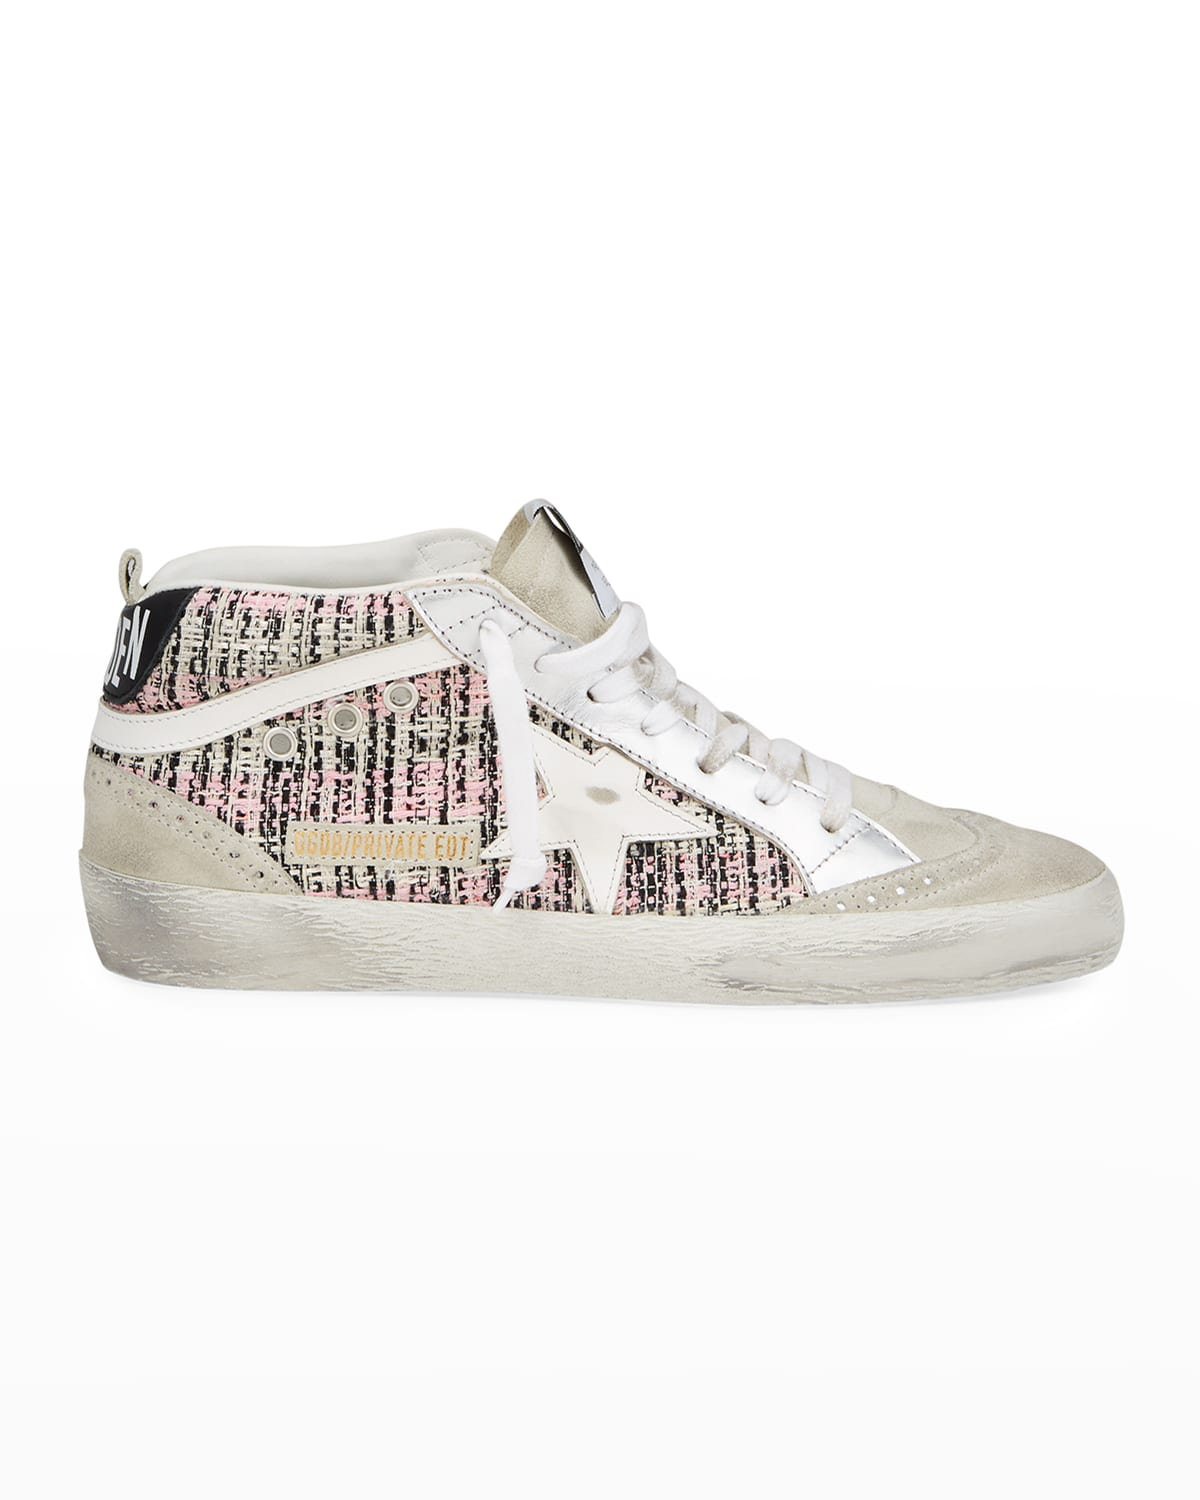 Star Boucle & Laminated Leather Mid-Top Sneakers